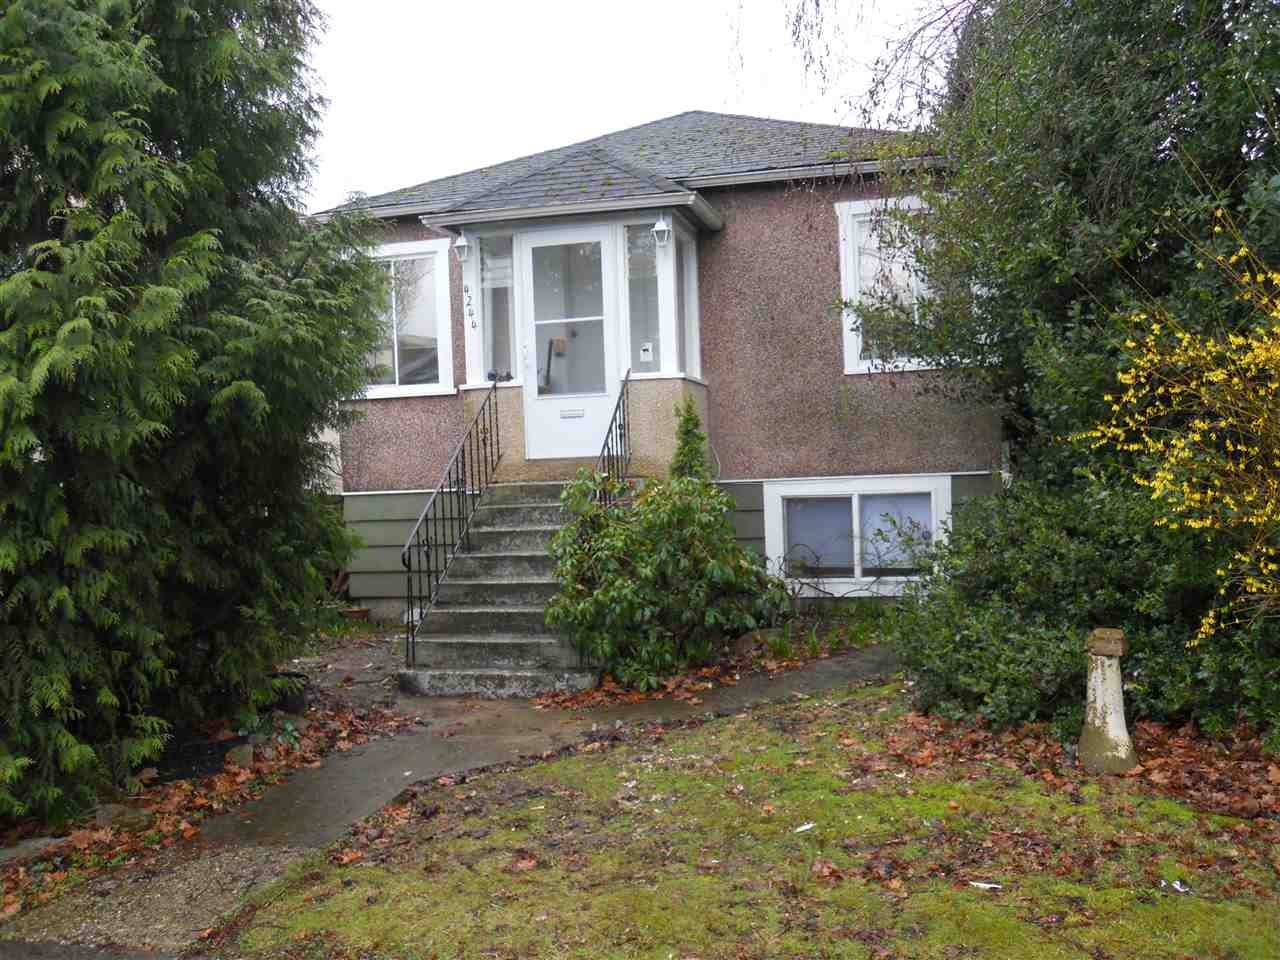 Main Photo: 4244 PENDER Street in Burnaby: Willingdon Heights House for sale (Burnaby North)  : MLS® # R2149678